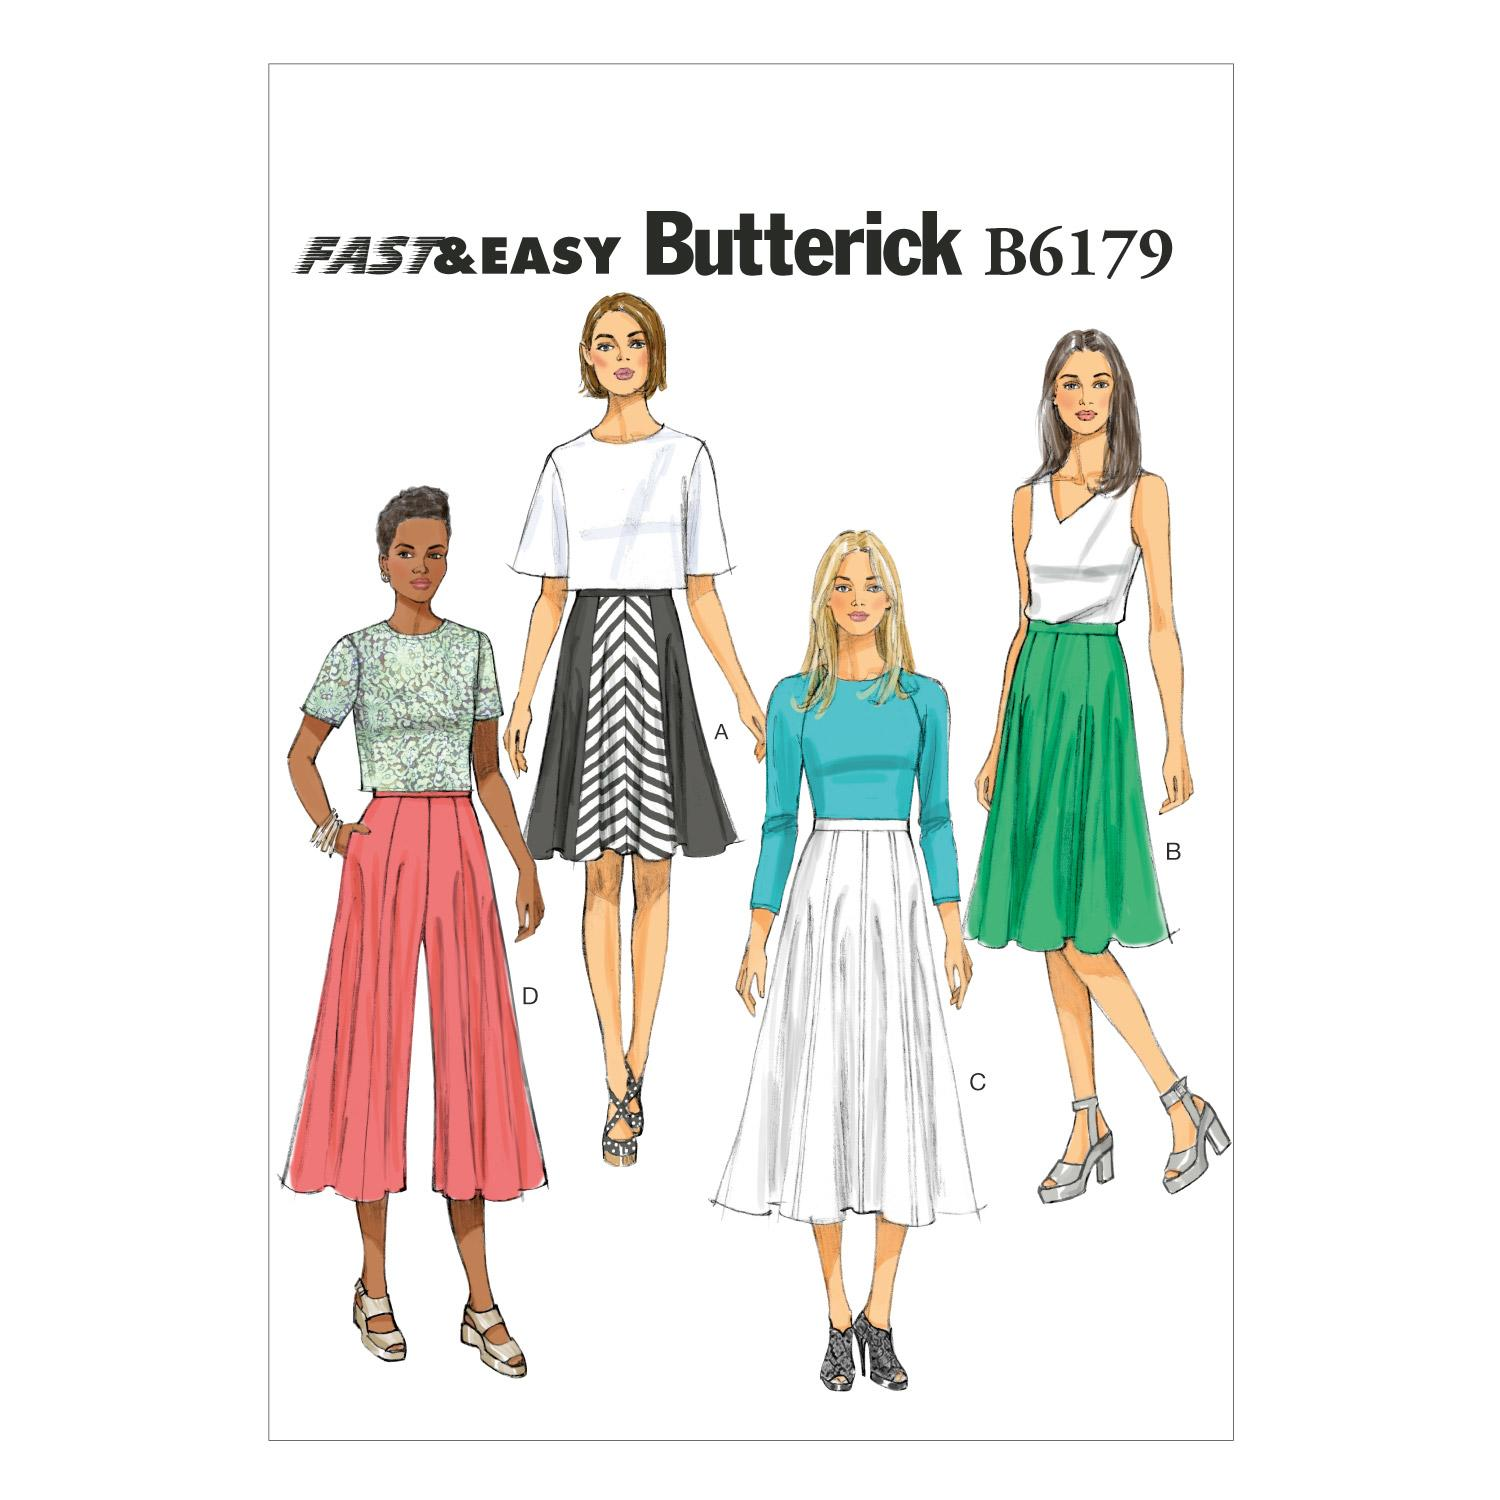 Butterick B6179 Misses' Skirt and Culottes